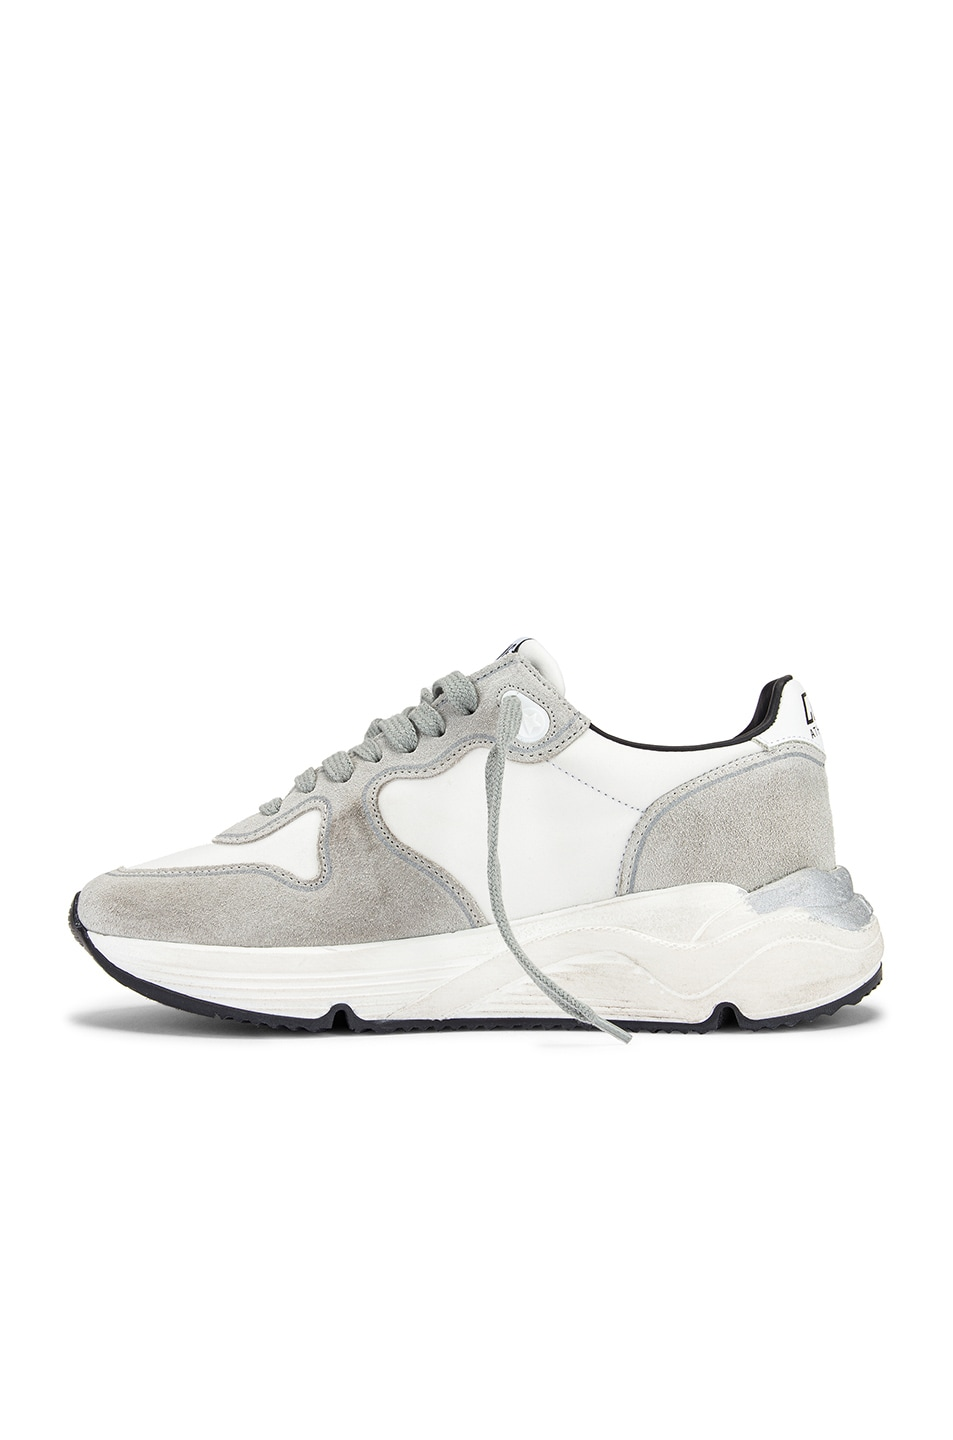 Image 5 of Golden Goose Running Sole Sneaker in White Lycra & Black